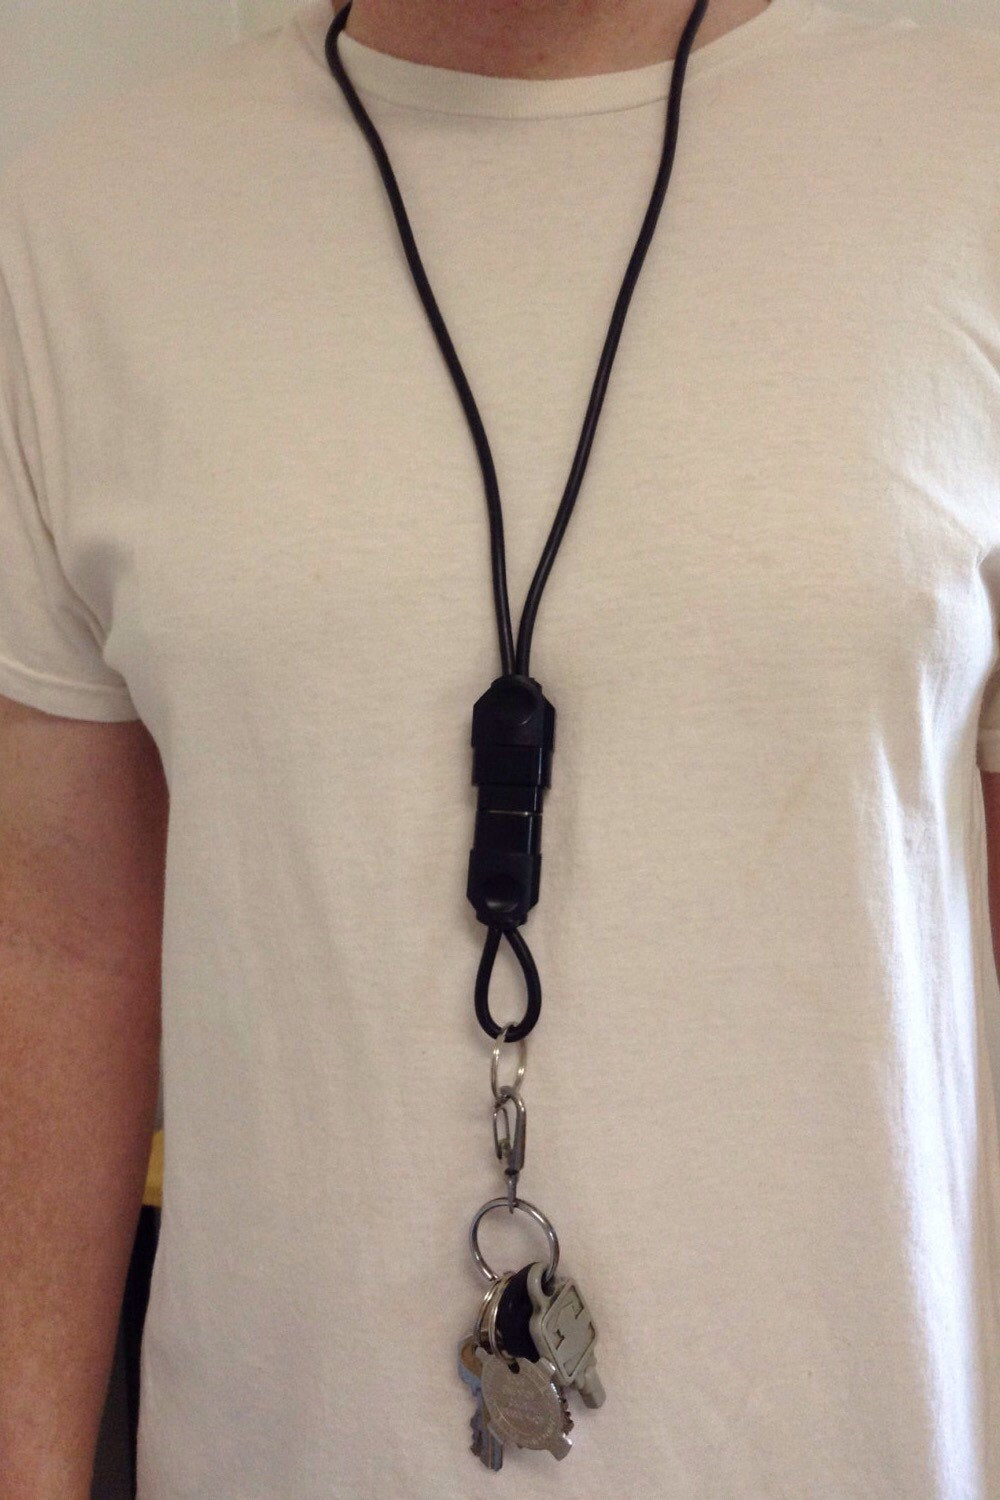 Xbox Lanyard with key Chain Upcycled Real Video Game Plug